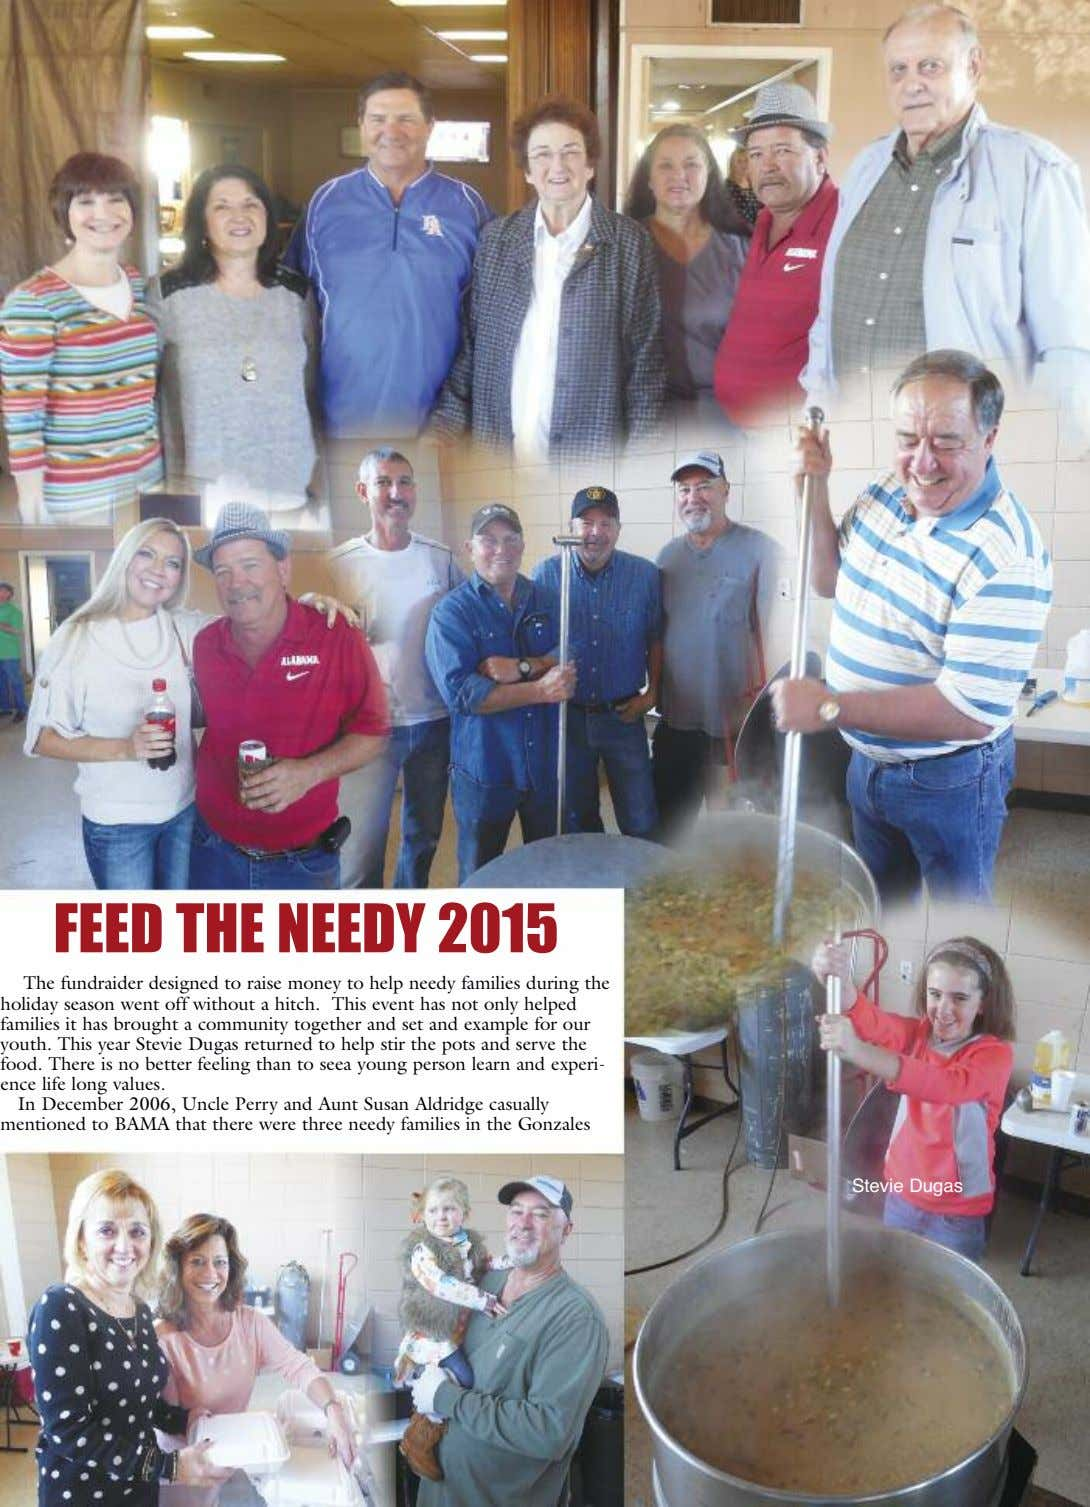 FEED THE NEEDY 2015 The fundraider designed to raise money to help needy families during